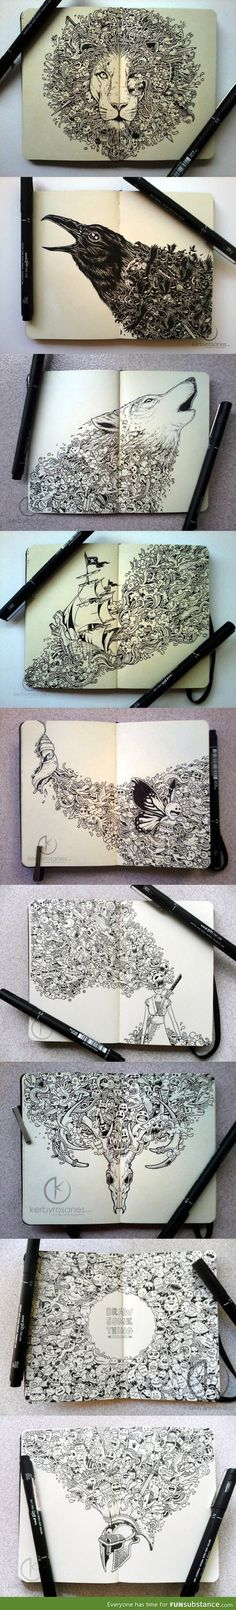 Incredible moleskine drawings @S. C. Studio NYC #saltstudioslc